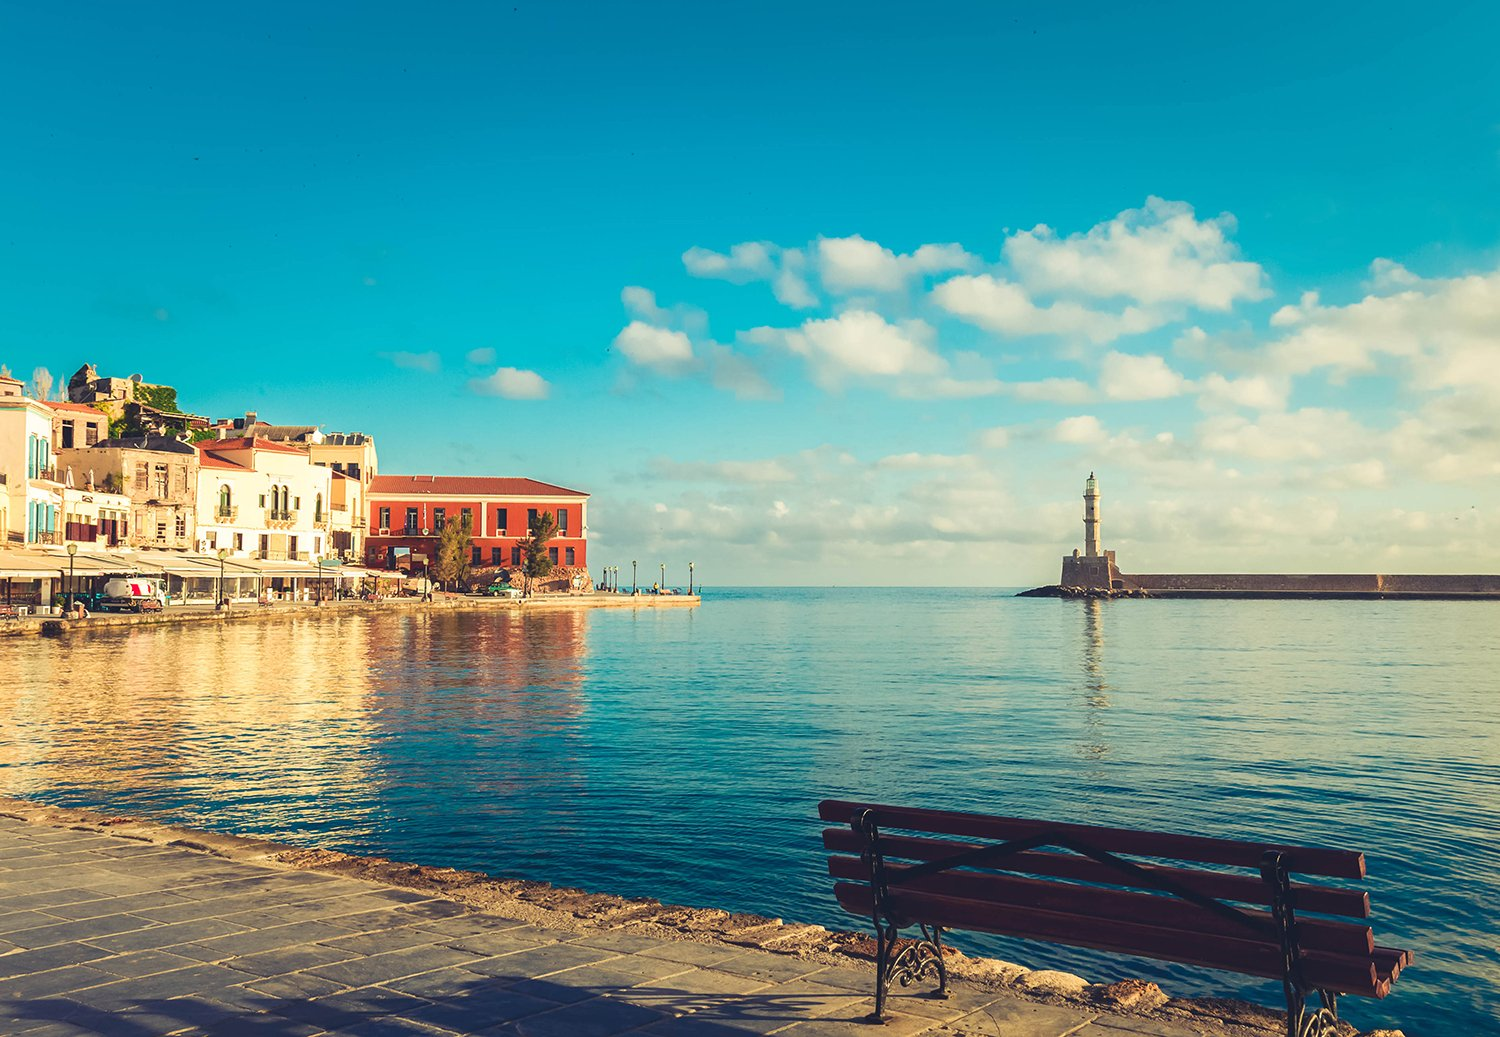 famouse venetian embankment of Chania old town, Crete, Greece, toned